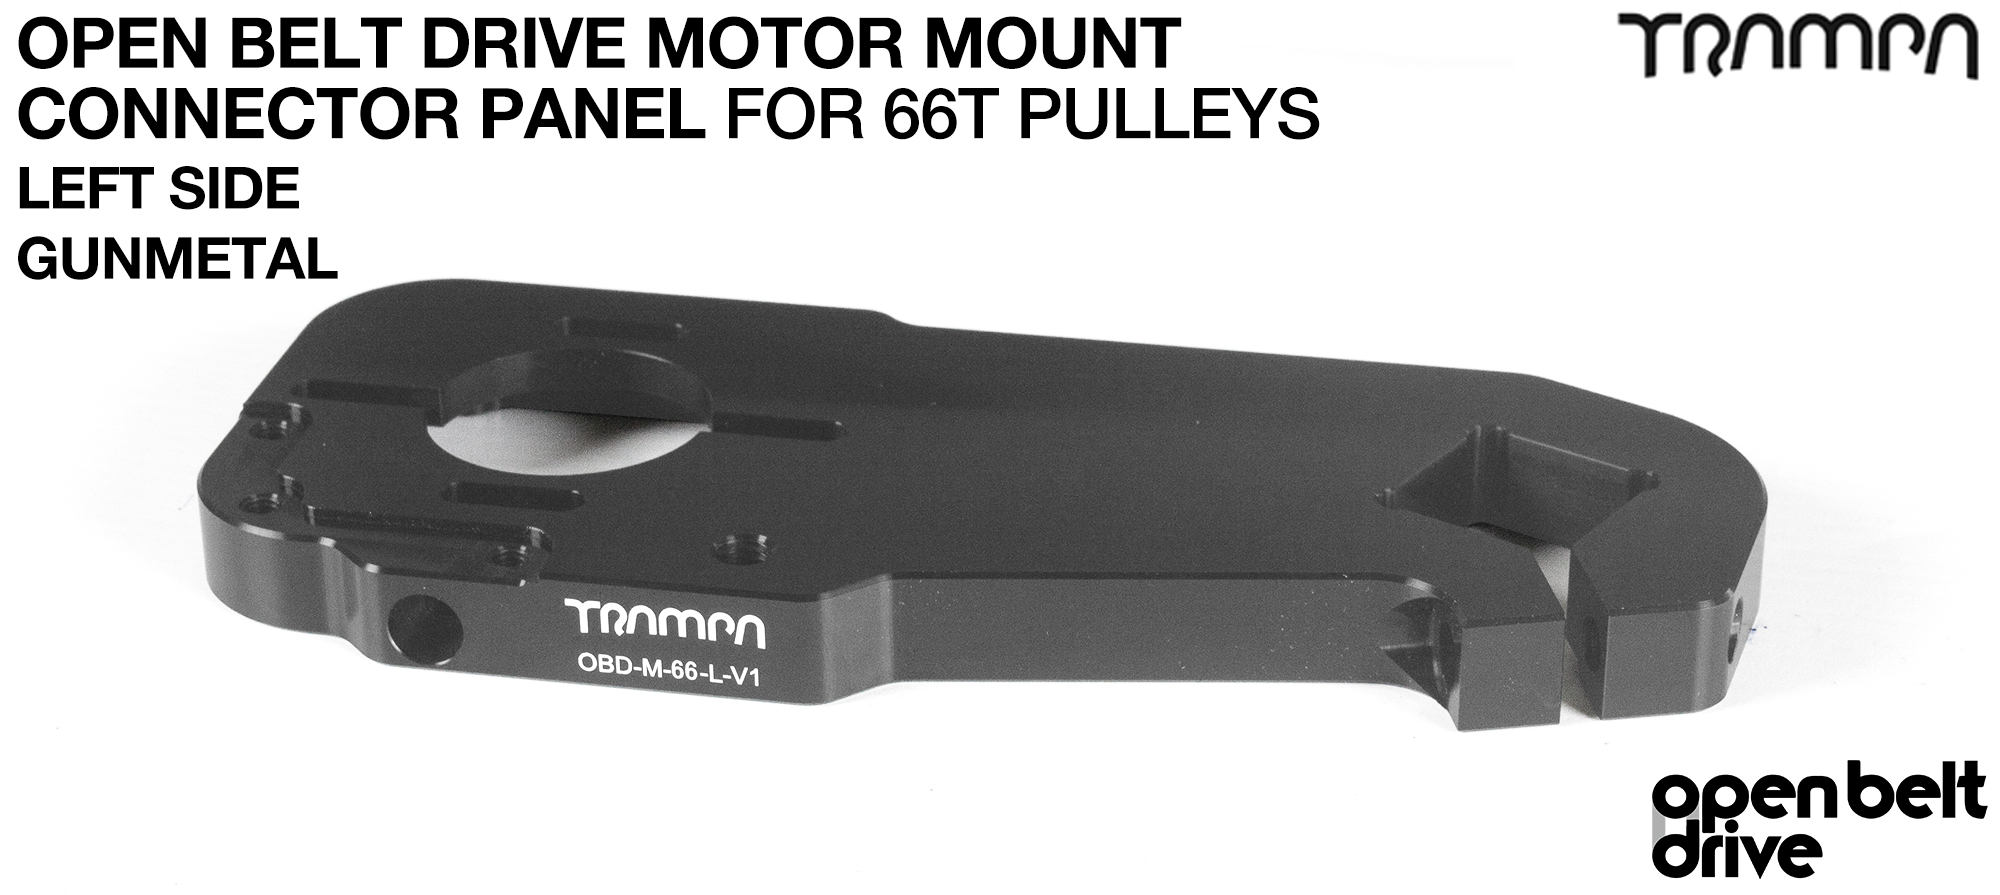 GUNMETAL 66T TWIN OBD Motor Mount Panels